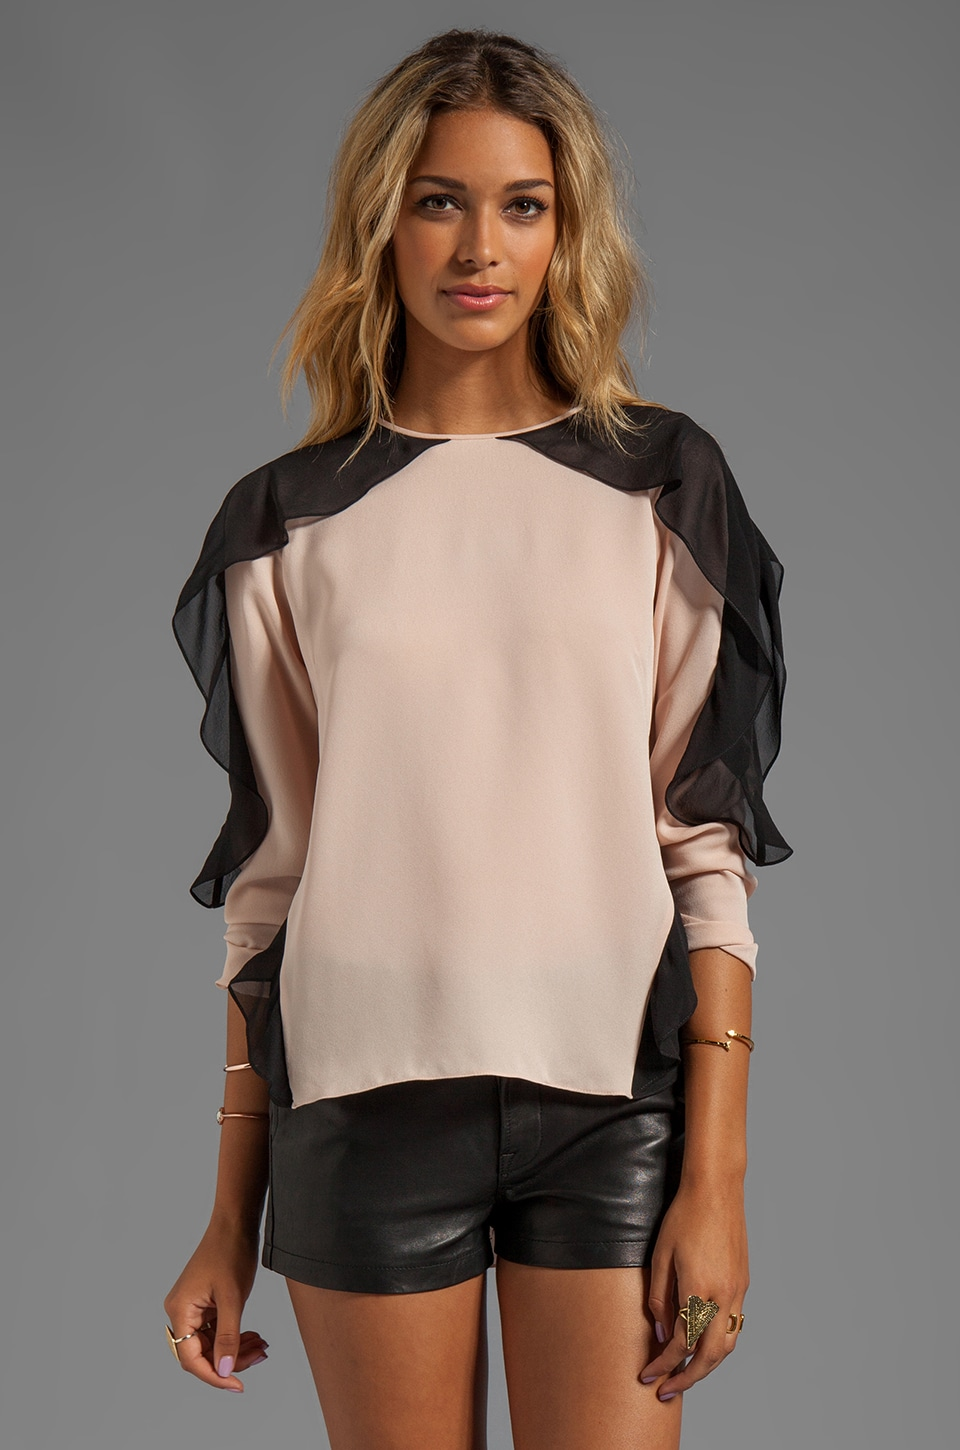 BCBGMAXAZRIA Shoulder Detail Top in Bare Pink